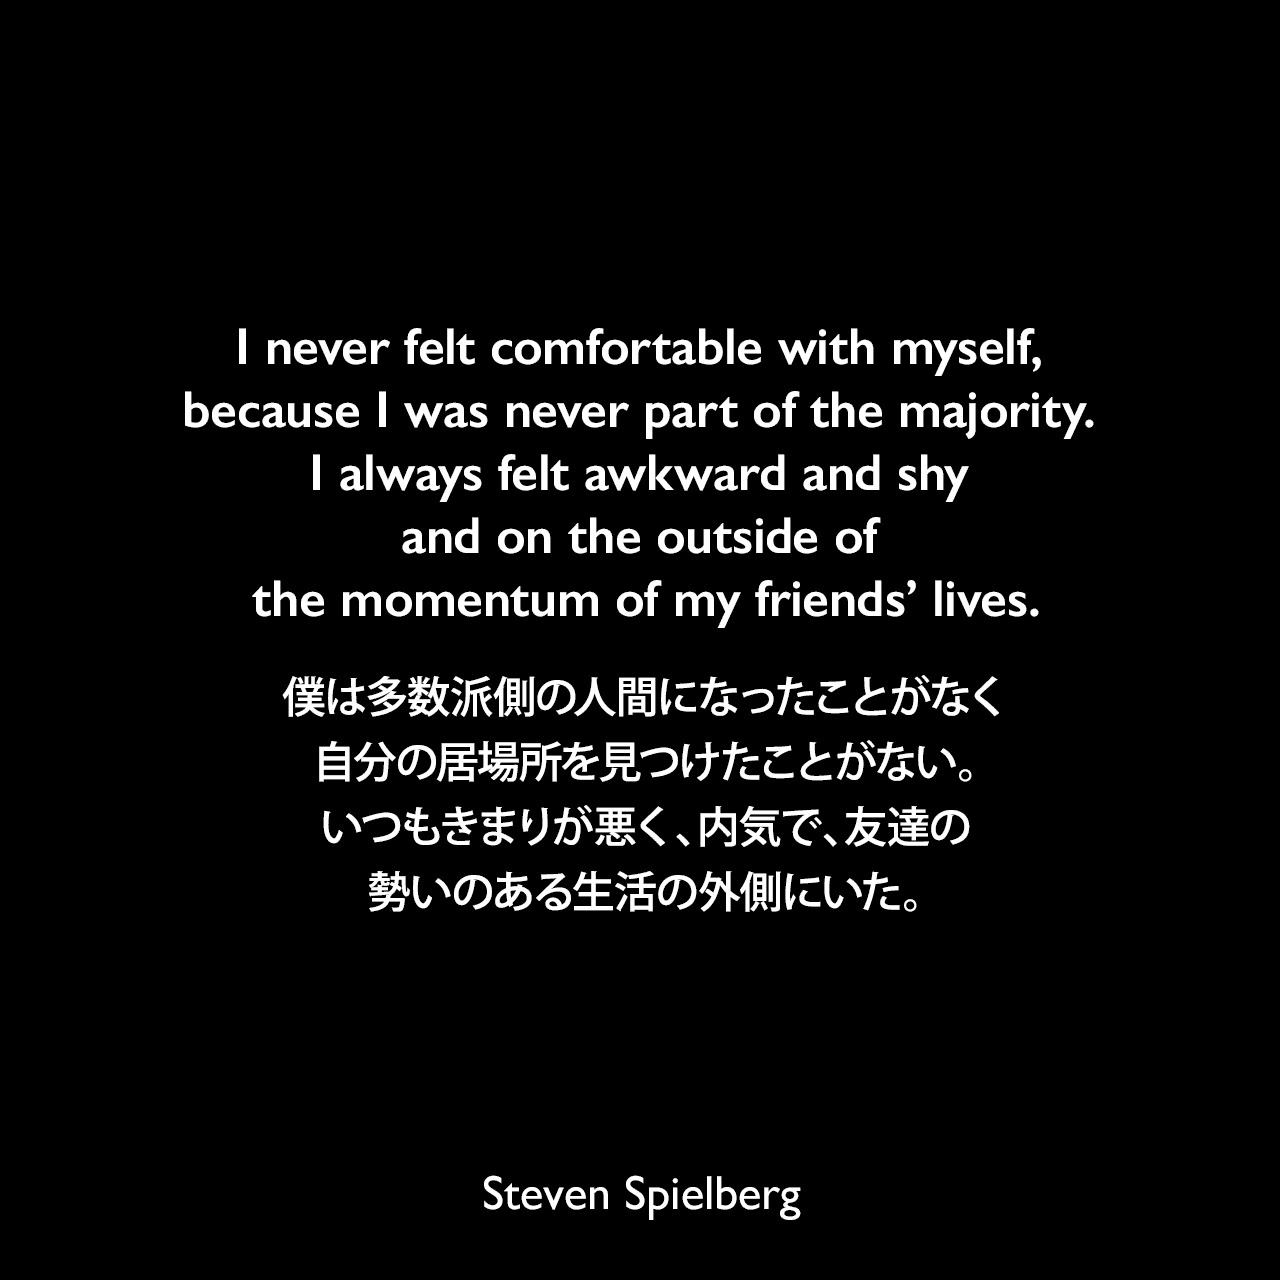 I never felt comfortable with myself, because I was never part of the majority. I always felt awkward and shy and on the outside of the momentum of my friends' lives.僕は多数派側の人間になったことがなく、自分の居場所を見つけたことがない。いつもきまりが悪く、内気で、友達の勢いのある生活の外側にいた。Steven Spielberg